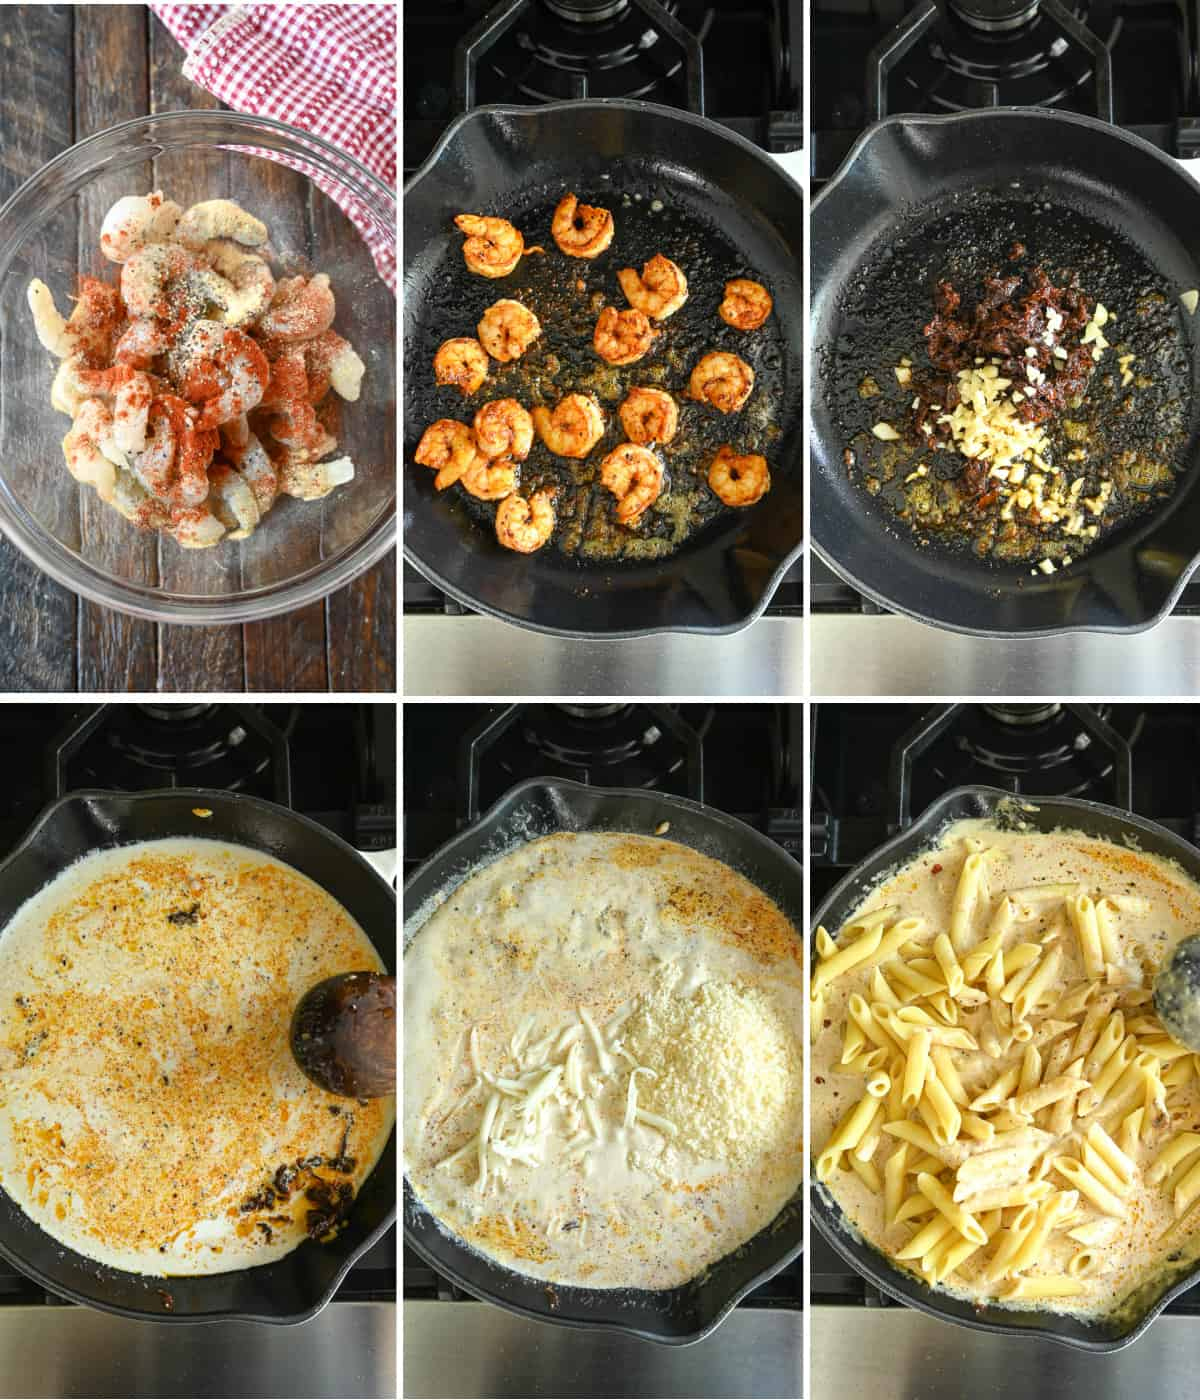 Six process photos. First one, raw shrimp in a bowl with seasonings. Secone one, shrimp cooked in a cast iron skillet. Third one, garlic and sun dried tomatoes in the skillet. Fourth one, liquid added to the skillet to simmer. Fifth one, cheeses added to the skillet to melt. Sixth one, cooked pasta added to the skillet.